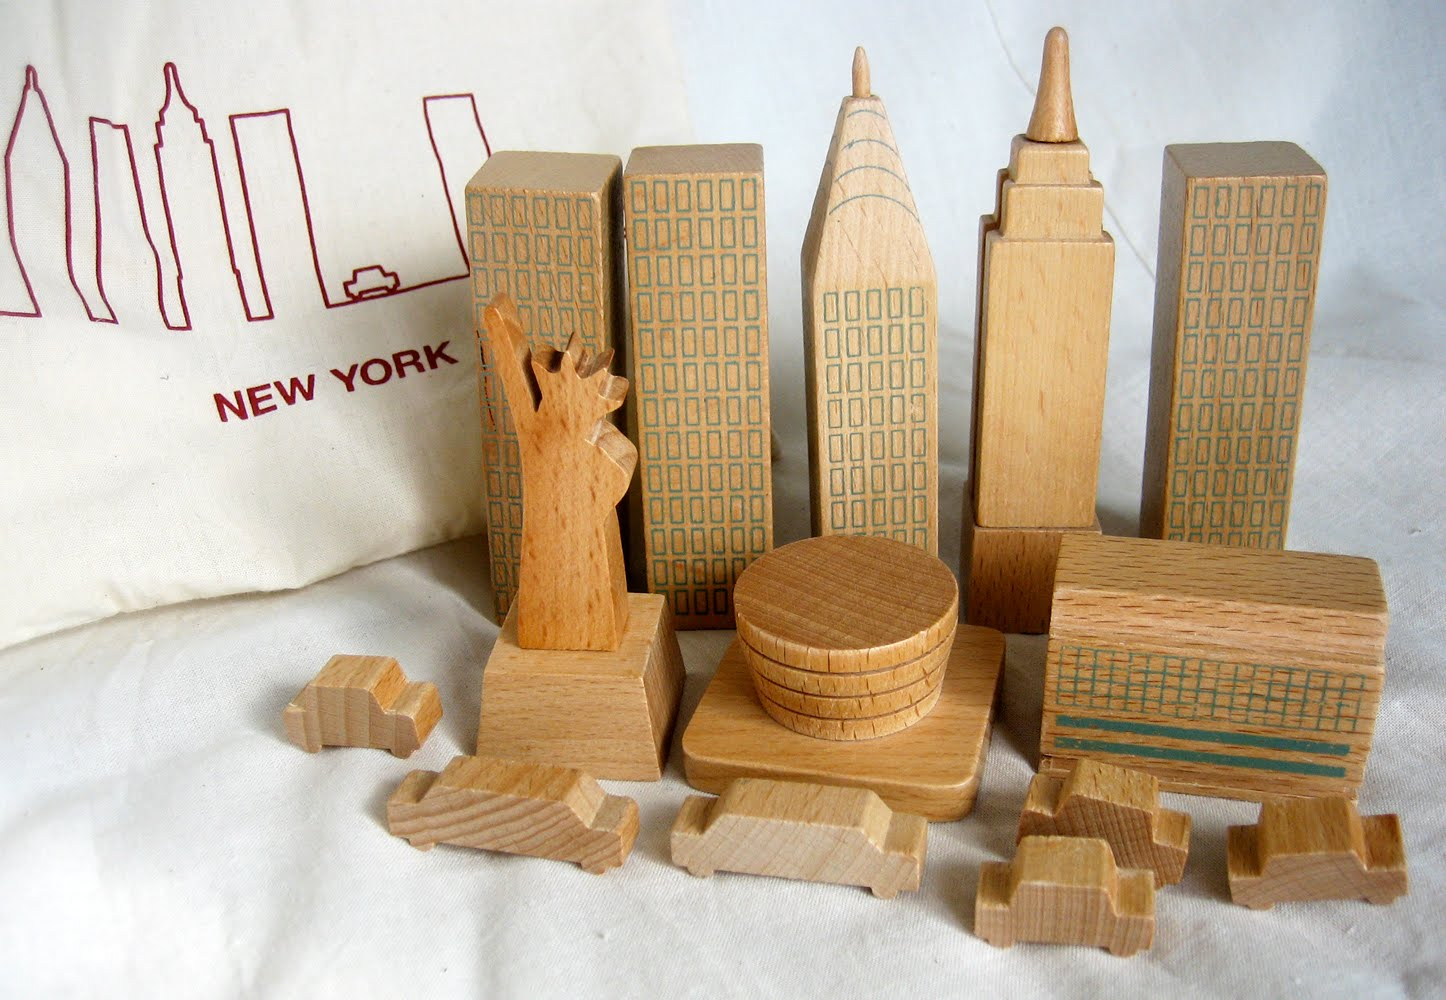 new york blocks